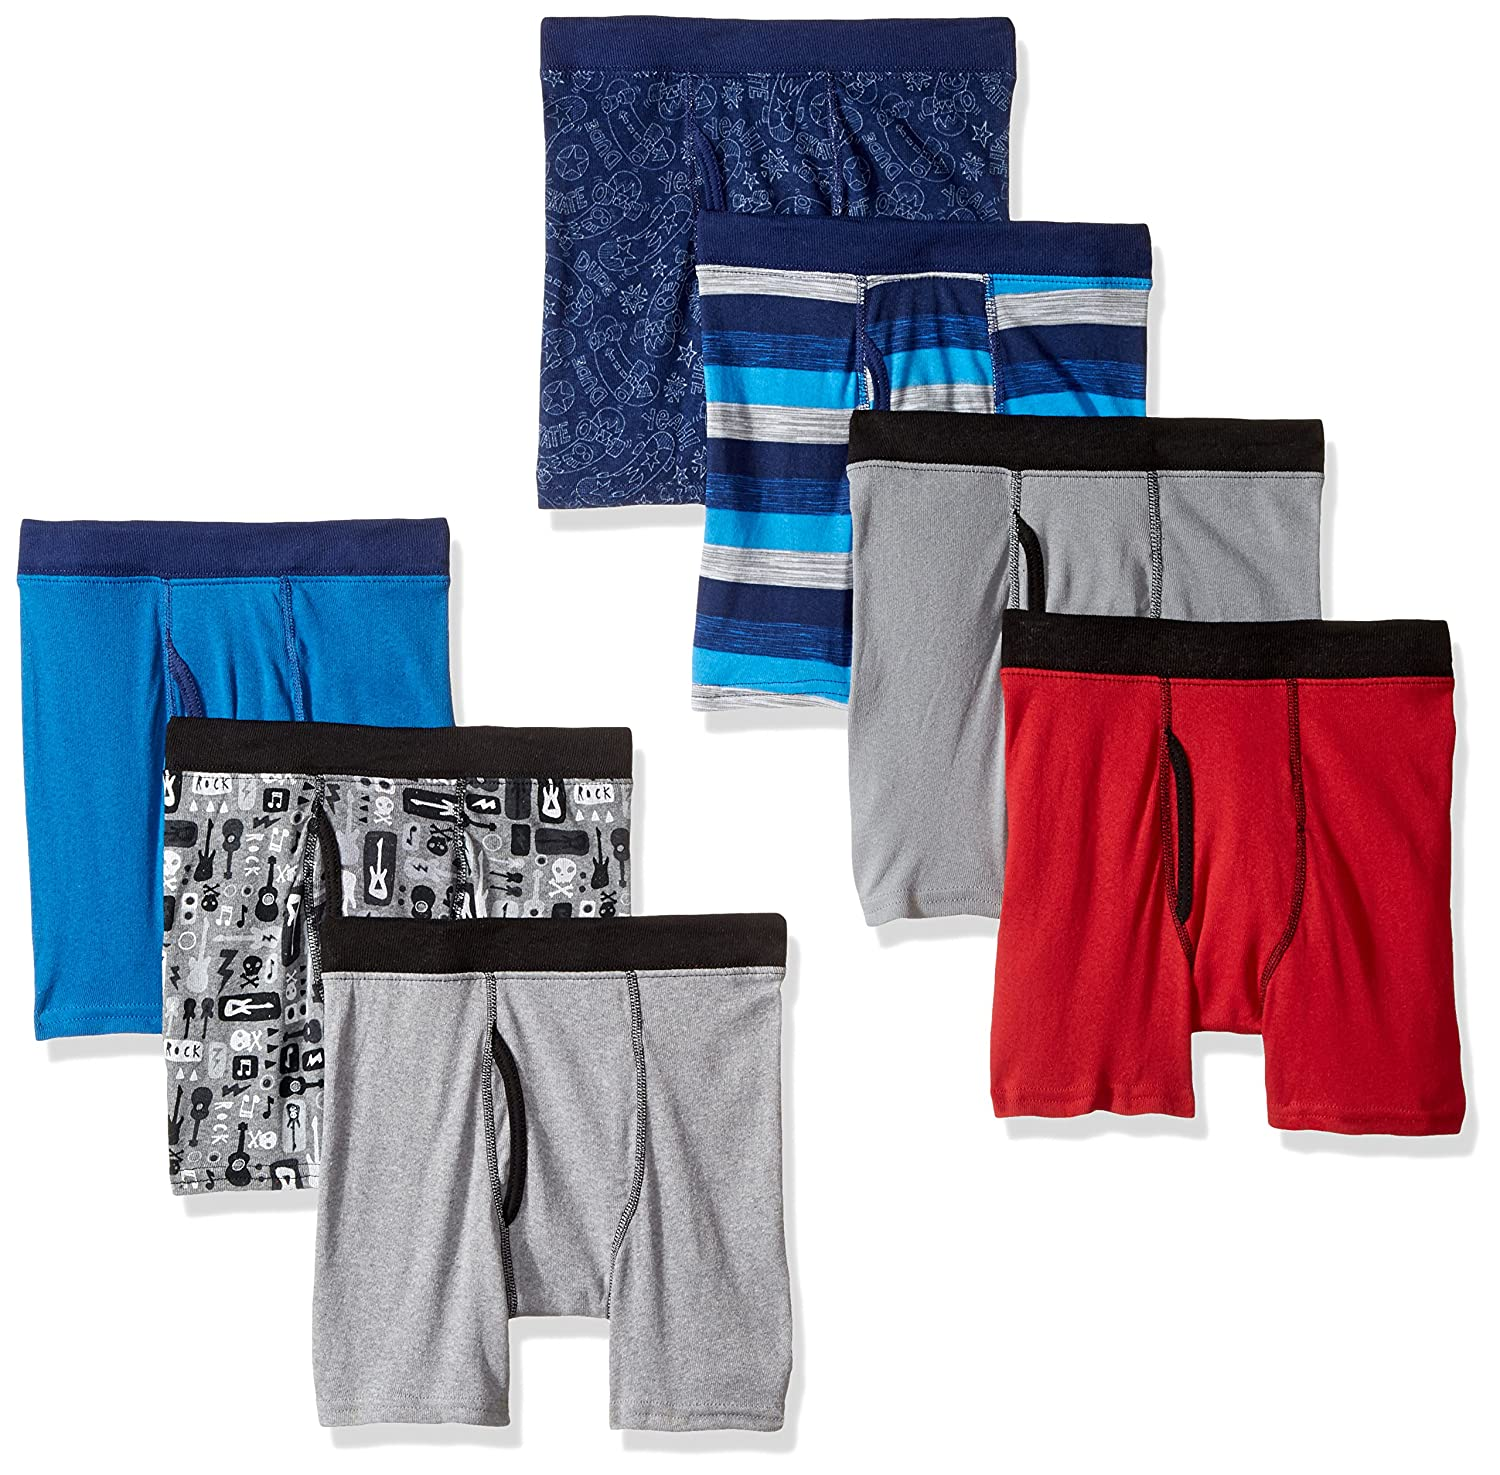 Hanes Boys Big Boys Boys Red Label ComfortSoft Printed Boxer Briefs Hanes Boys 8-20 Underwear B75PW7